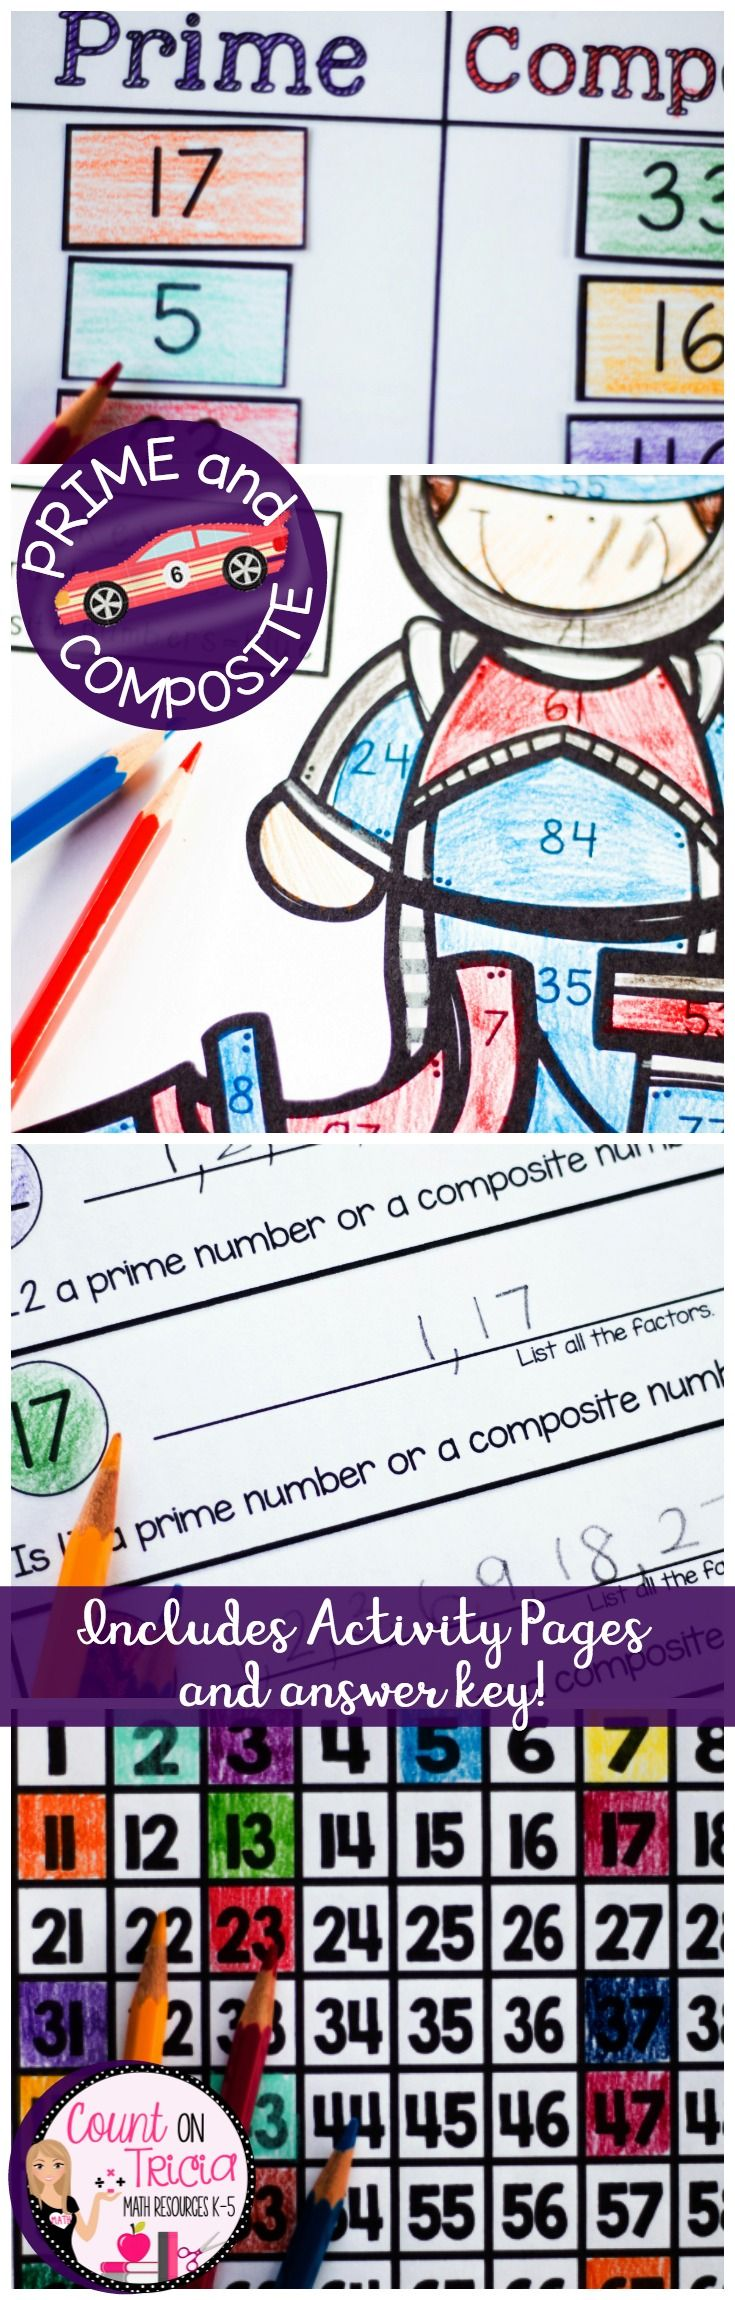 Practice learning Prime and Composite Numbers with these timesaving, engaging and fun practice activities for 5th Grade Math. Great idea for math centers, math stations and enrichment activities .